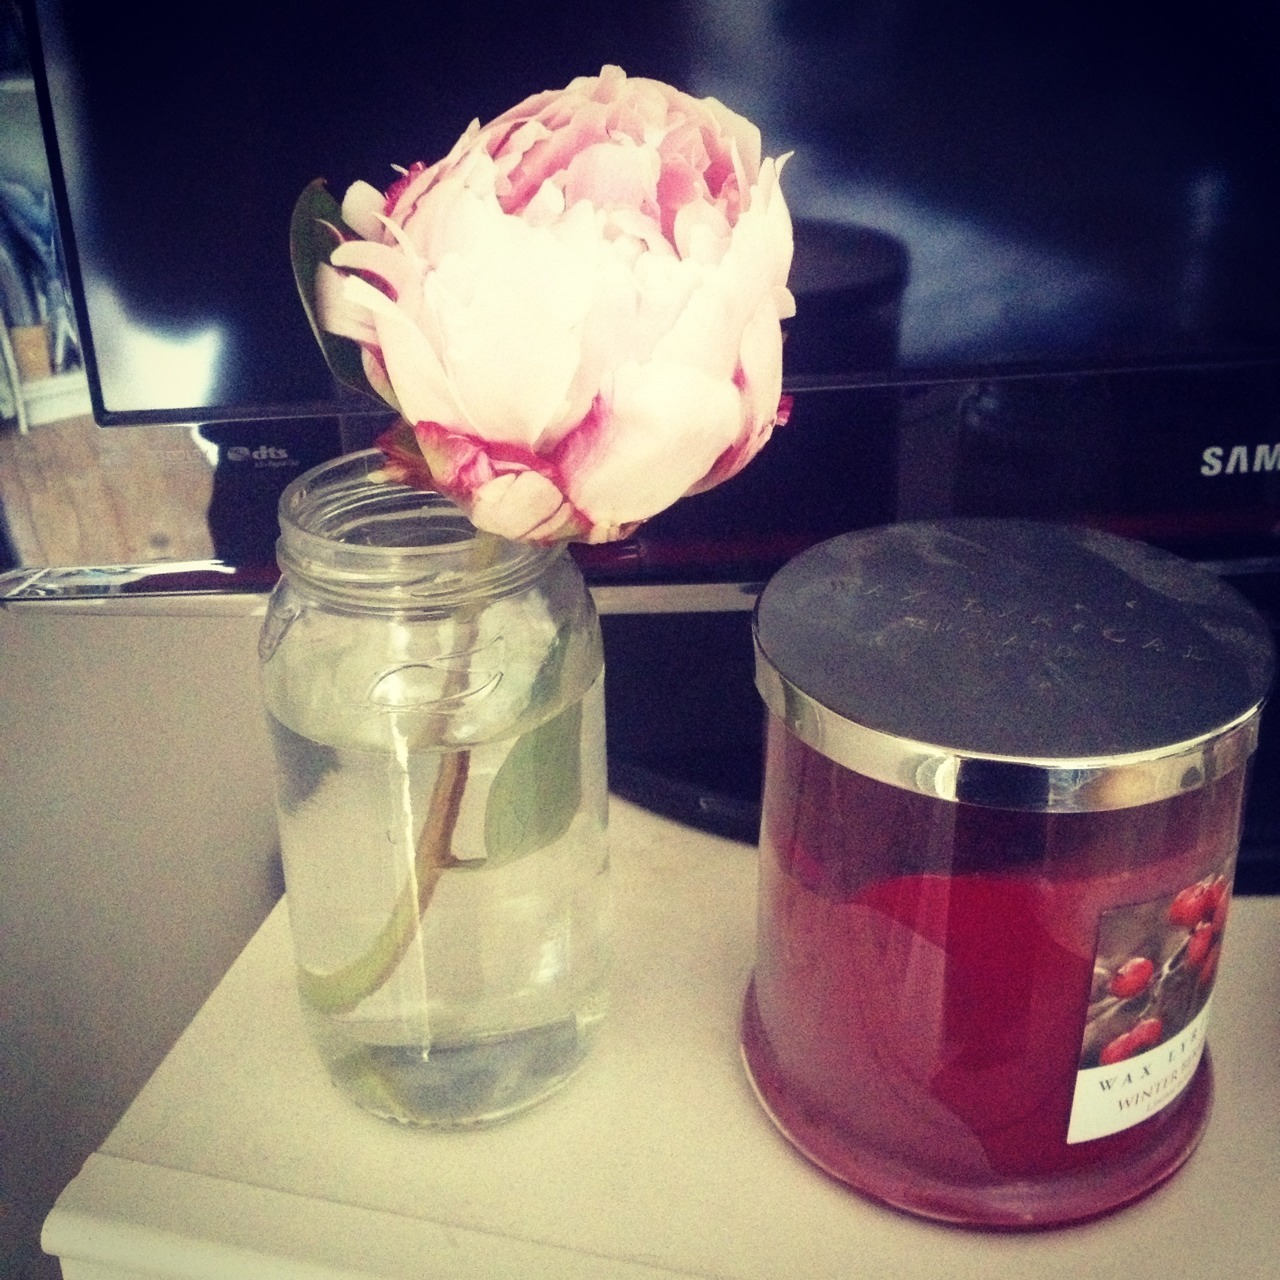 I put one of the left over flowers in a jam jar on my chest of drawers ☺